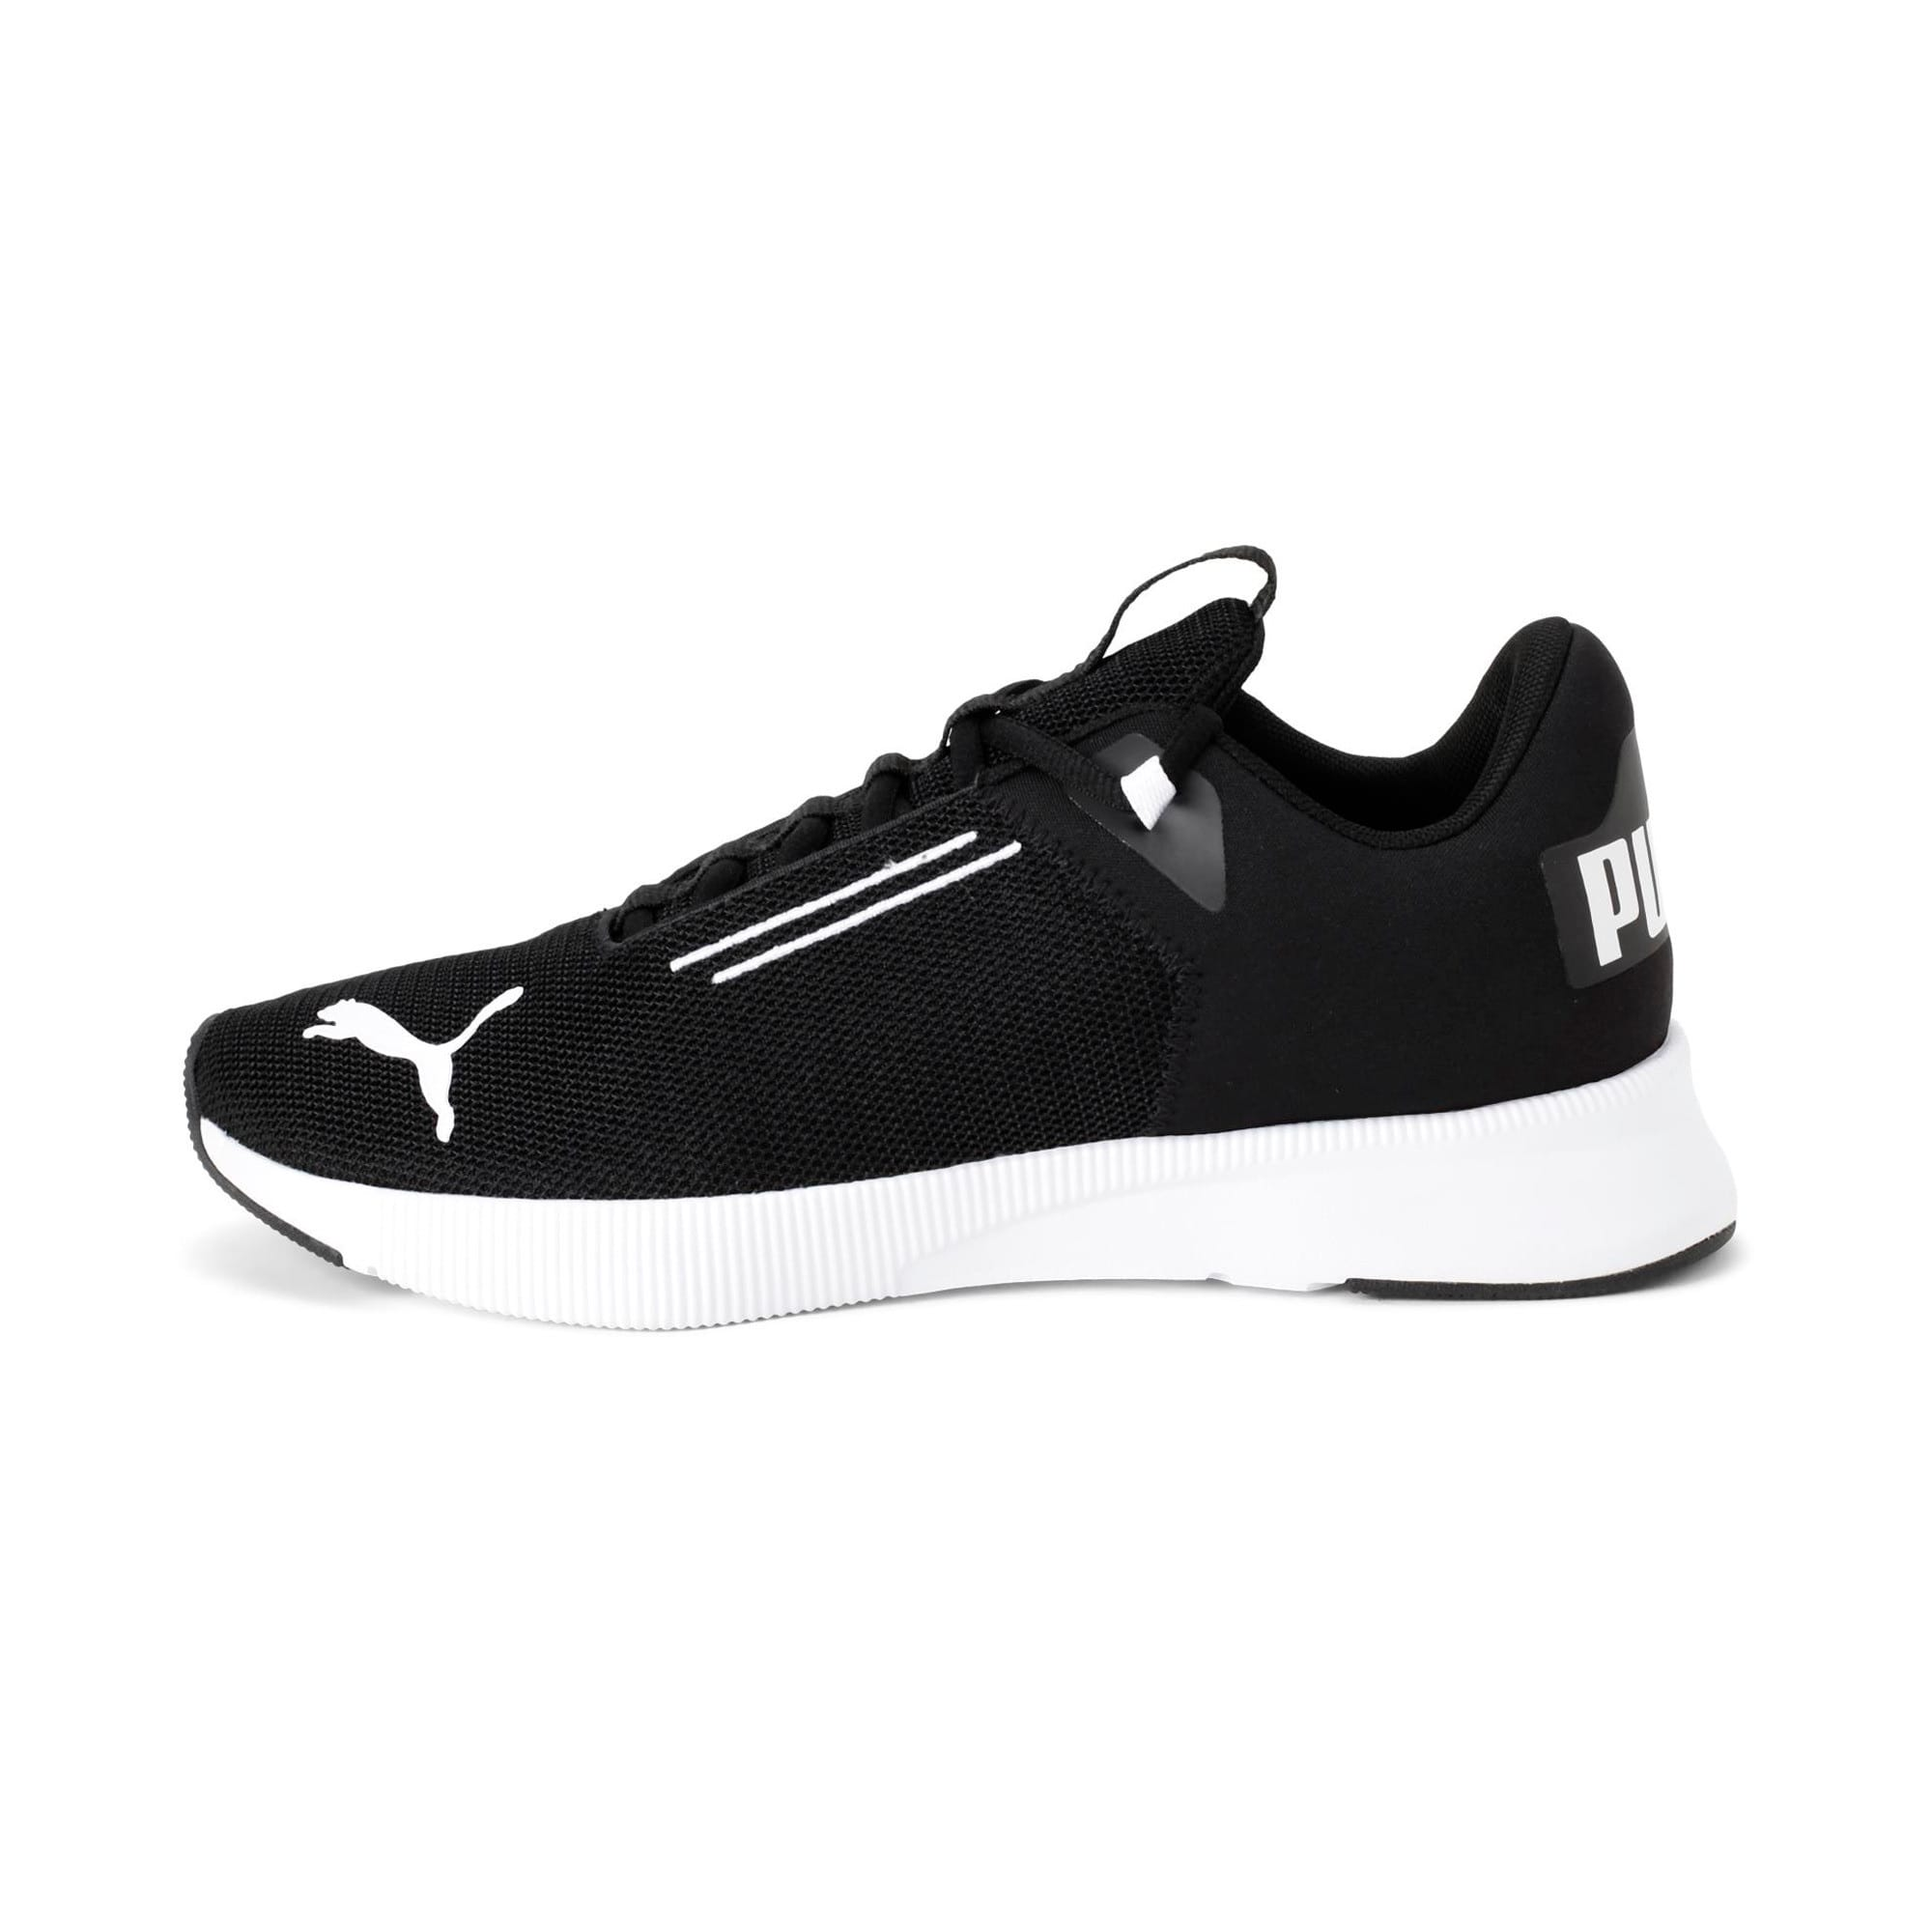 Thumbnail 1 of Flyer Modern Running Shoes, Puma Black-Puma White, medium-IND